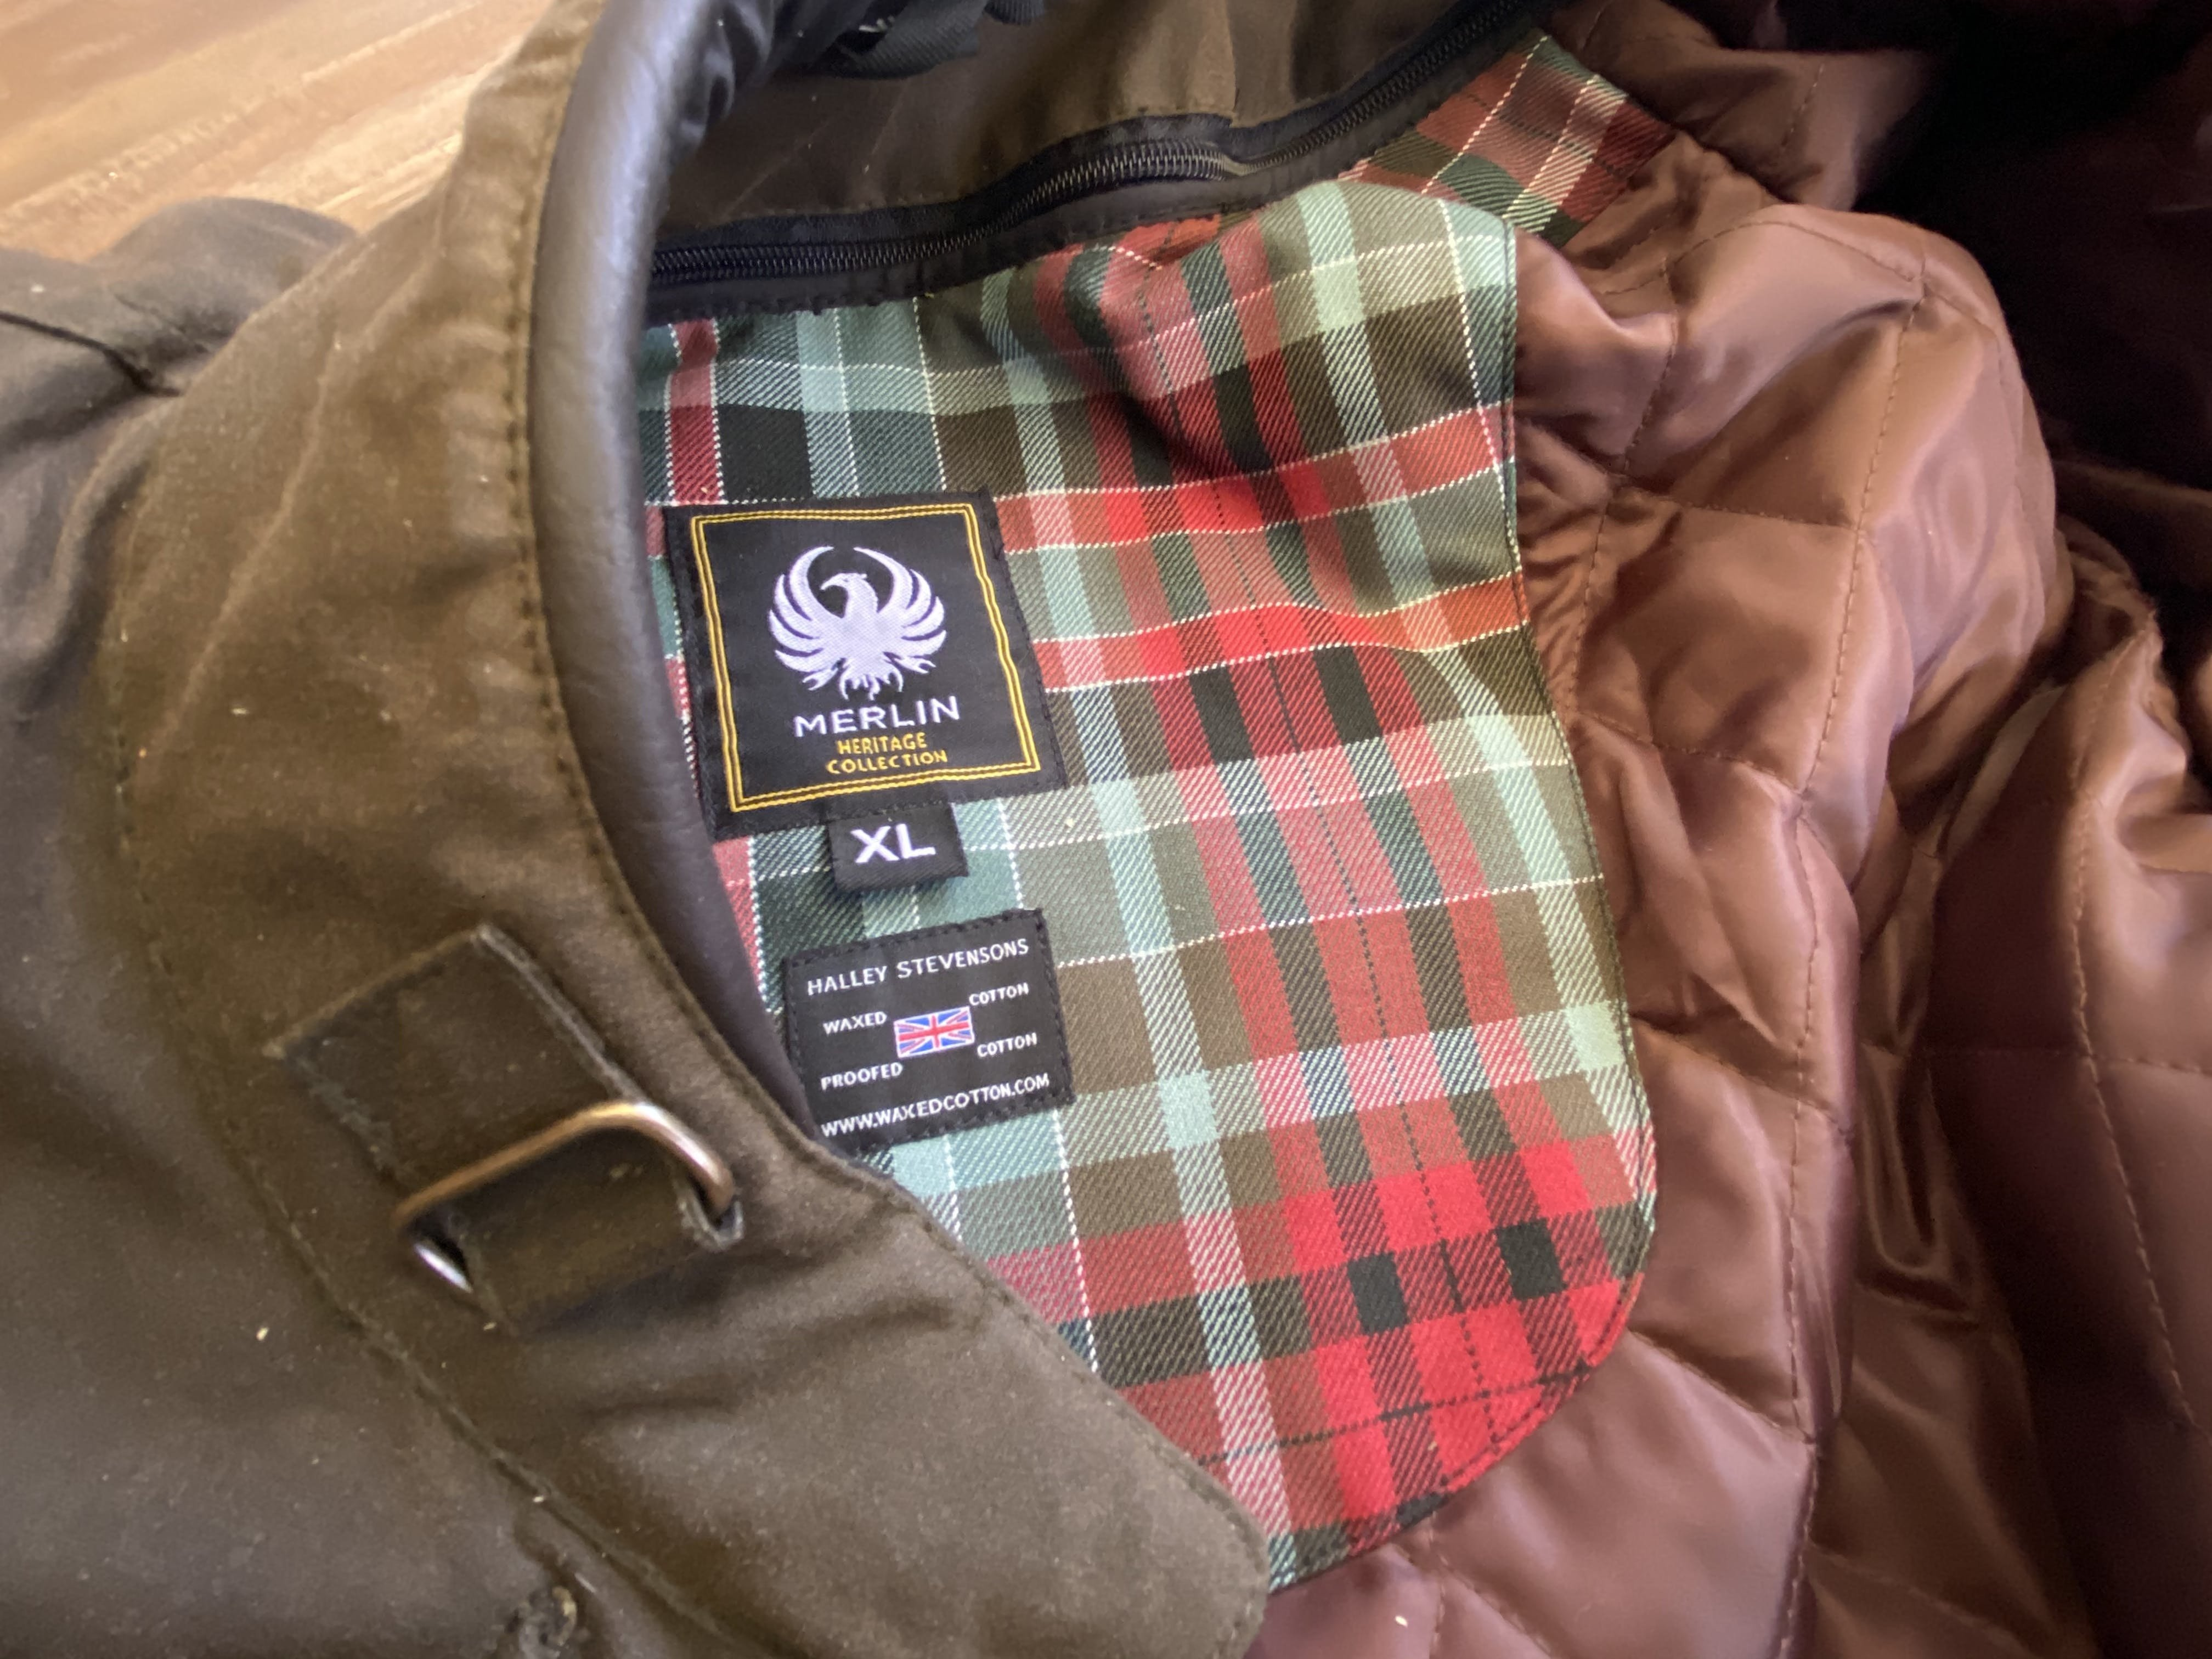 A close up of the quilted inside of the Merlin Barton Jacket